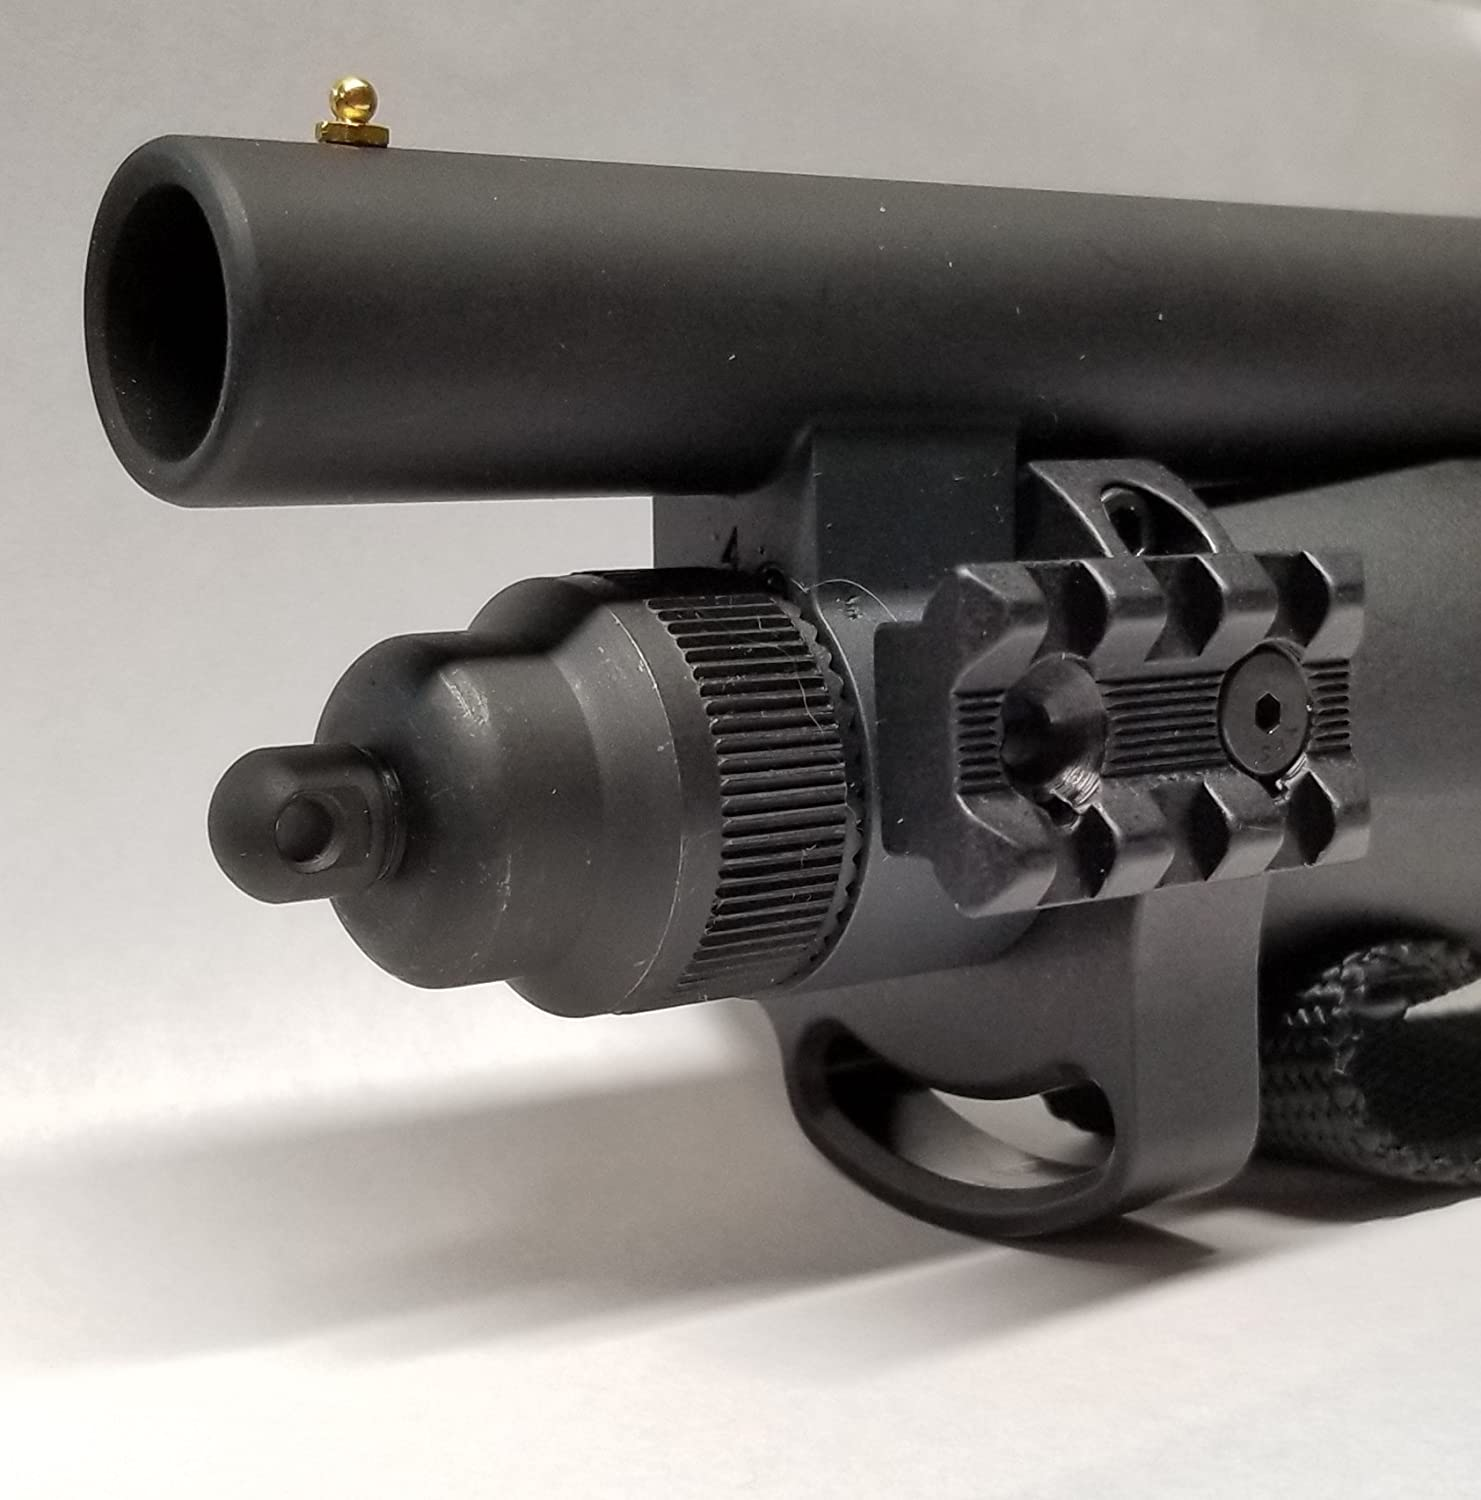 CDM GEAR Fits Mossberg 590 Shockwave 20ga  Not for use with Heat Shield   (MTRS-20)